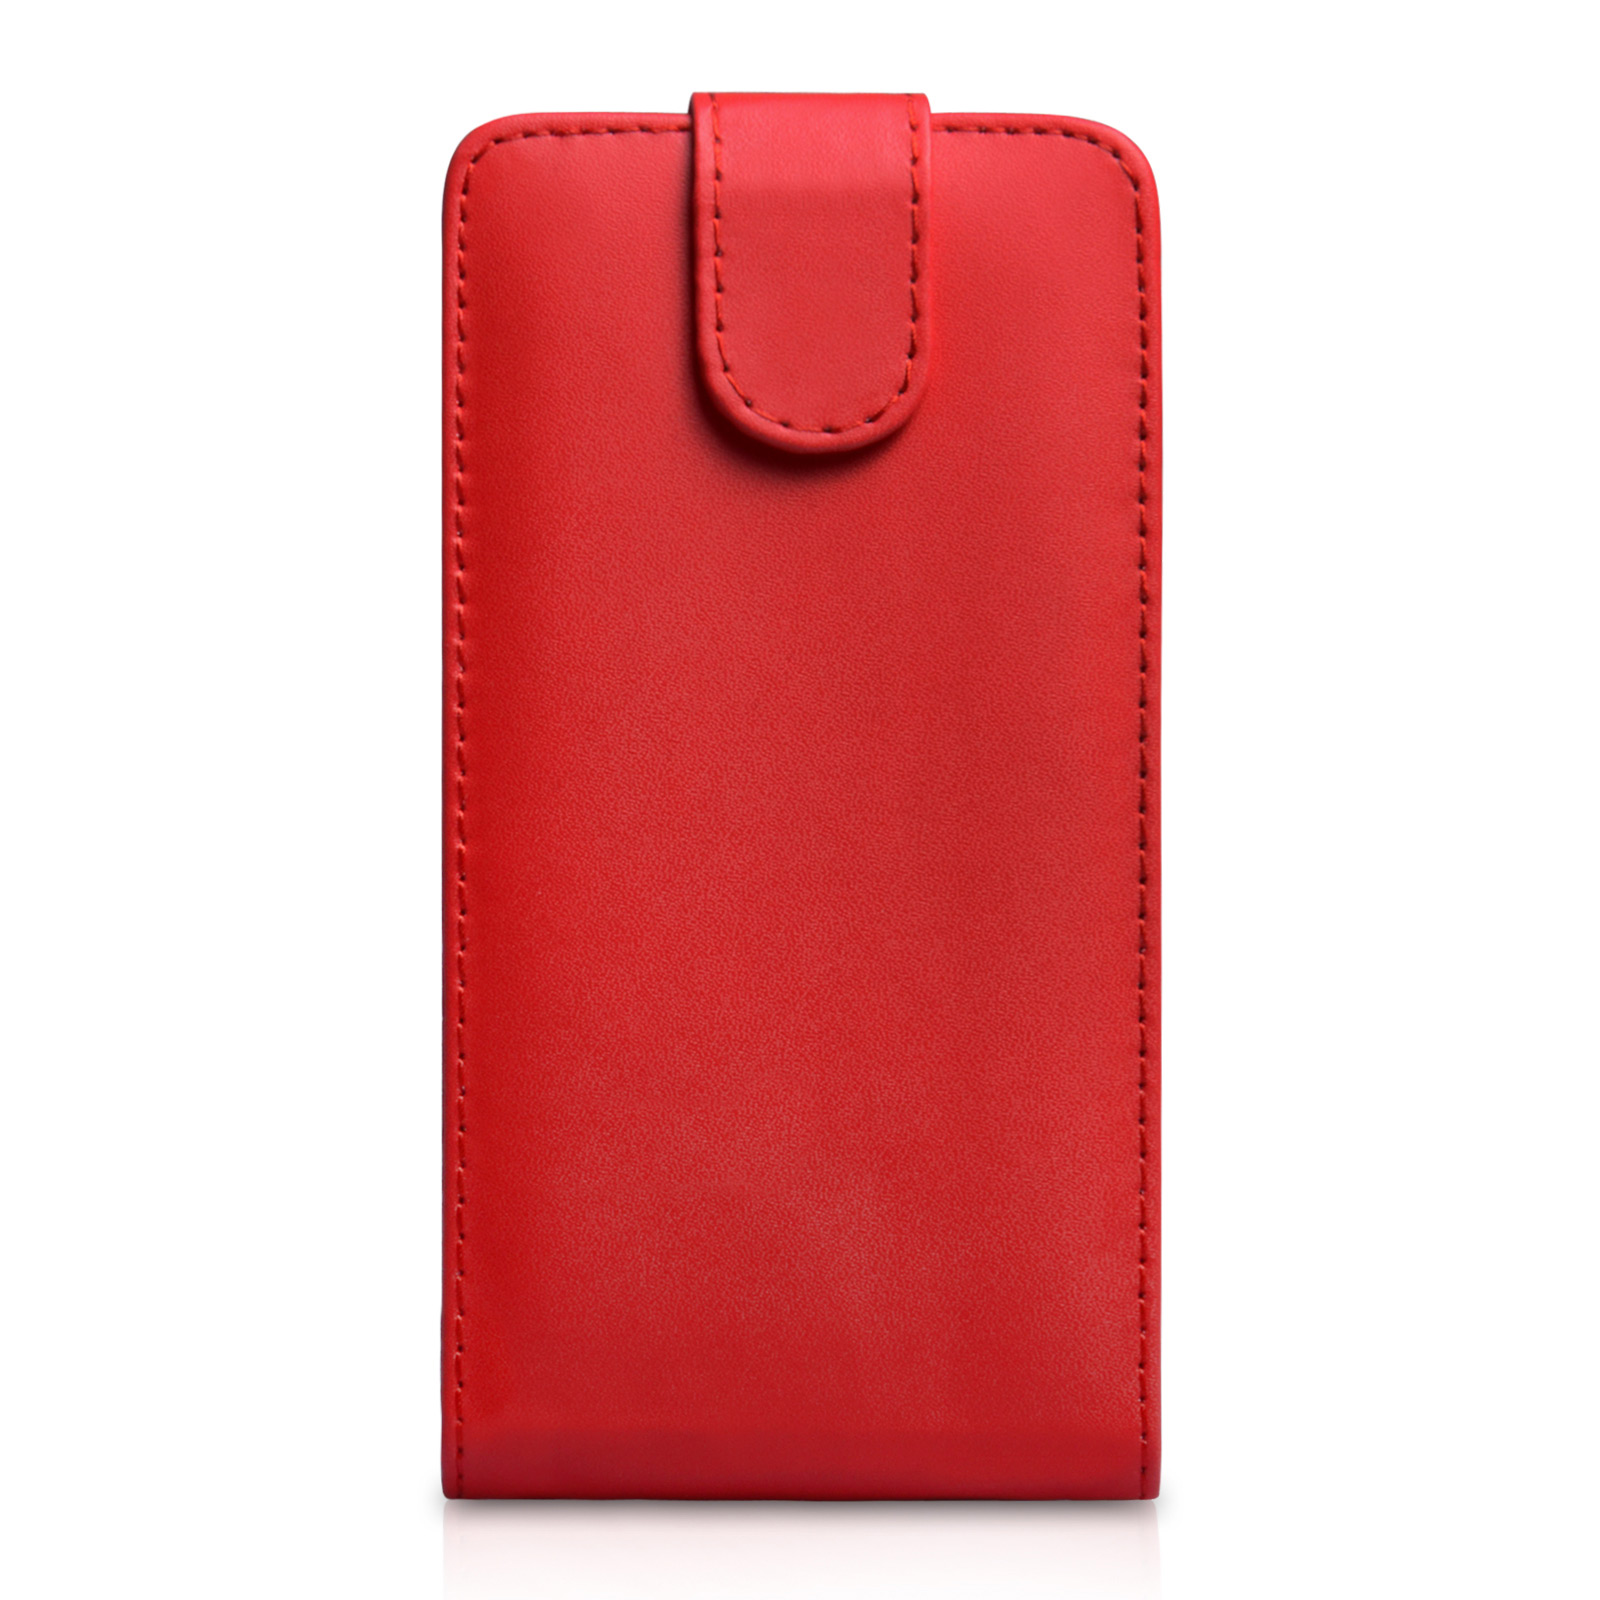 YouSave Accessories Sony Xperia Z2 Leather-Effect Flip Case - Red